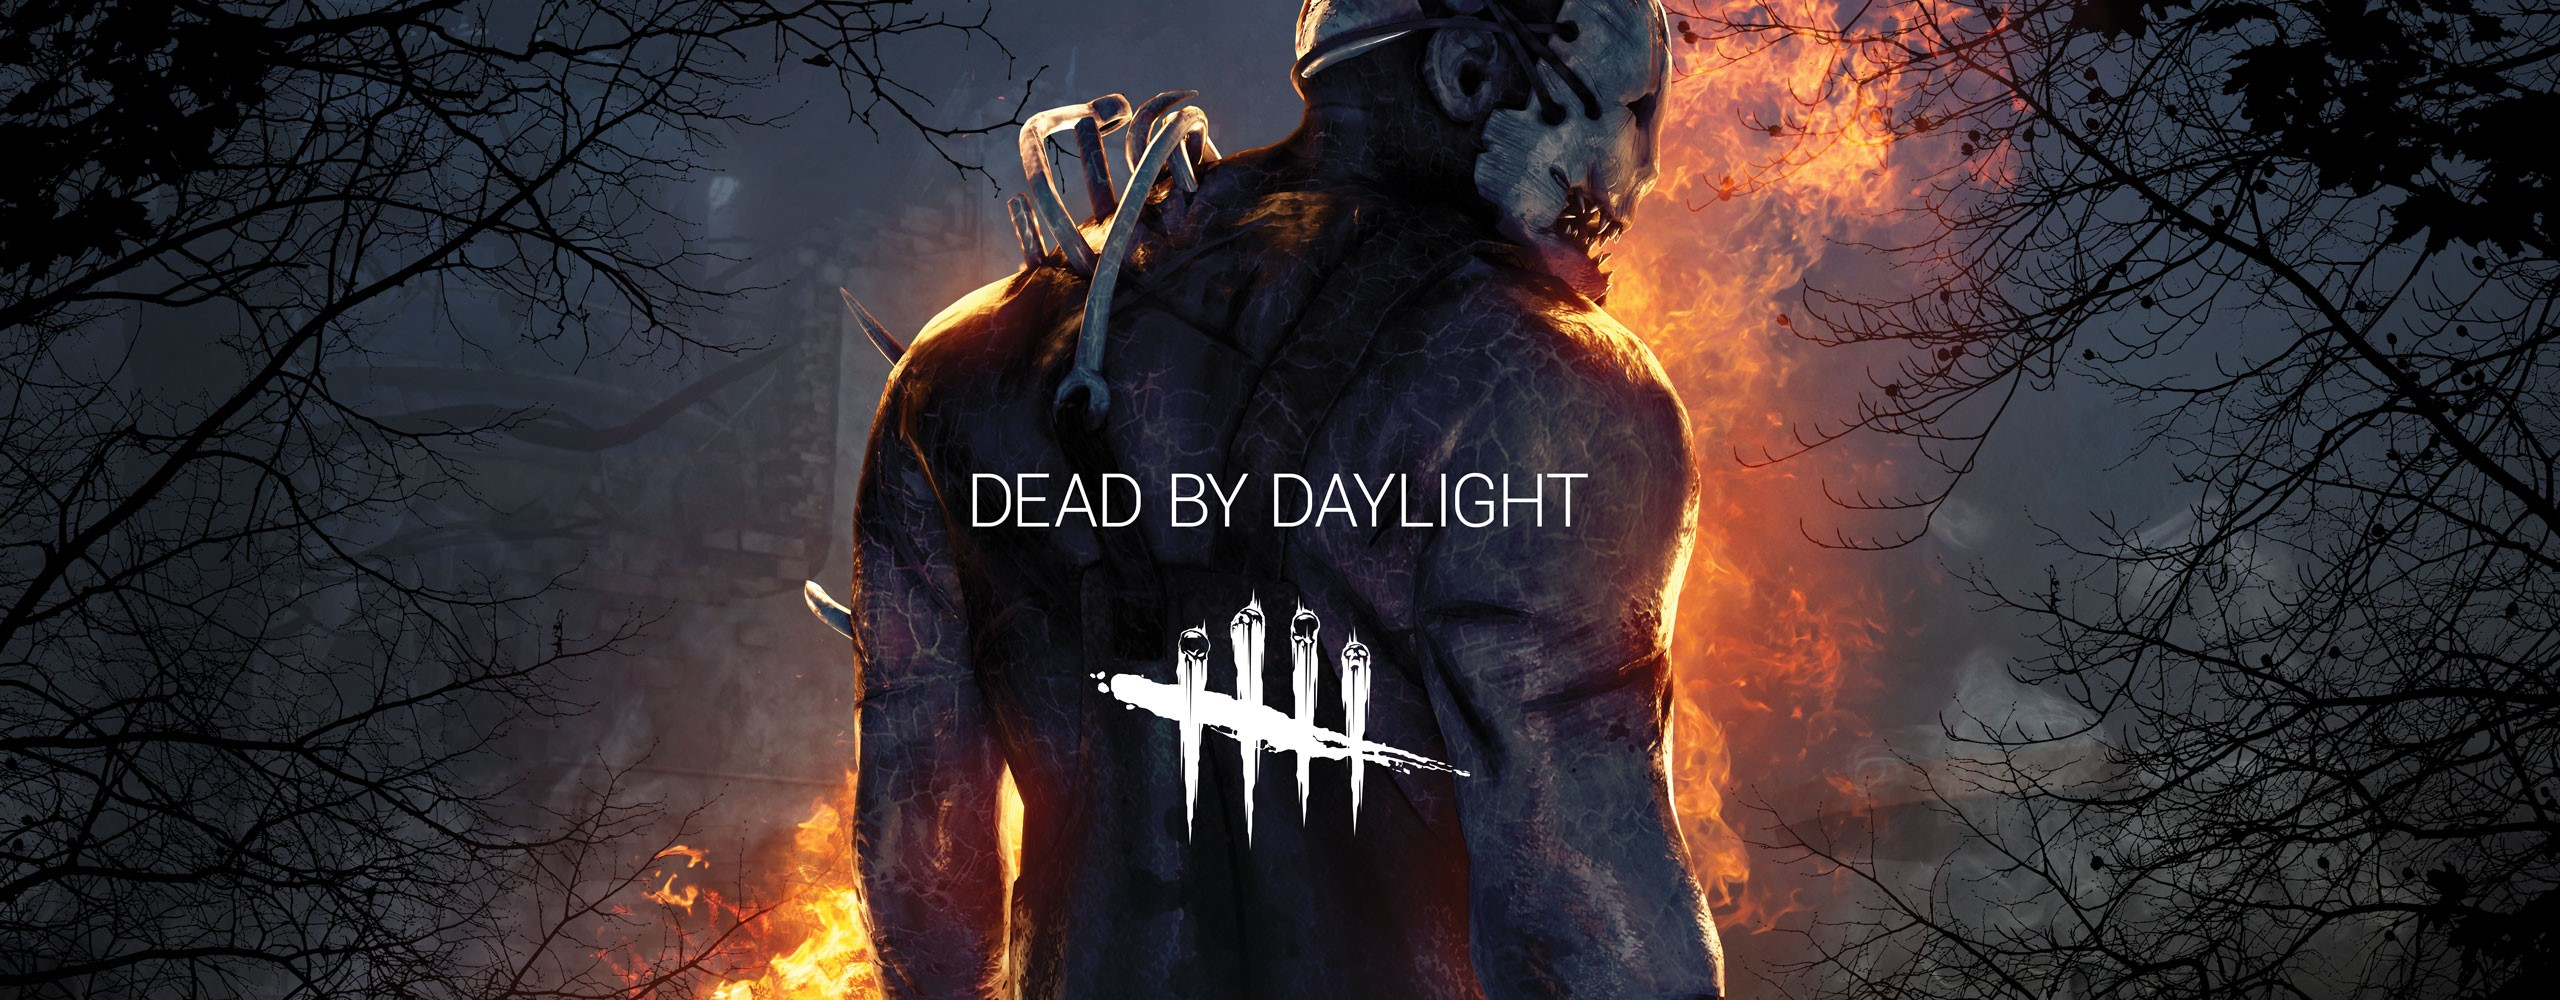 Dead by Daylight (Россия + СНГ)